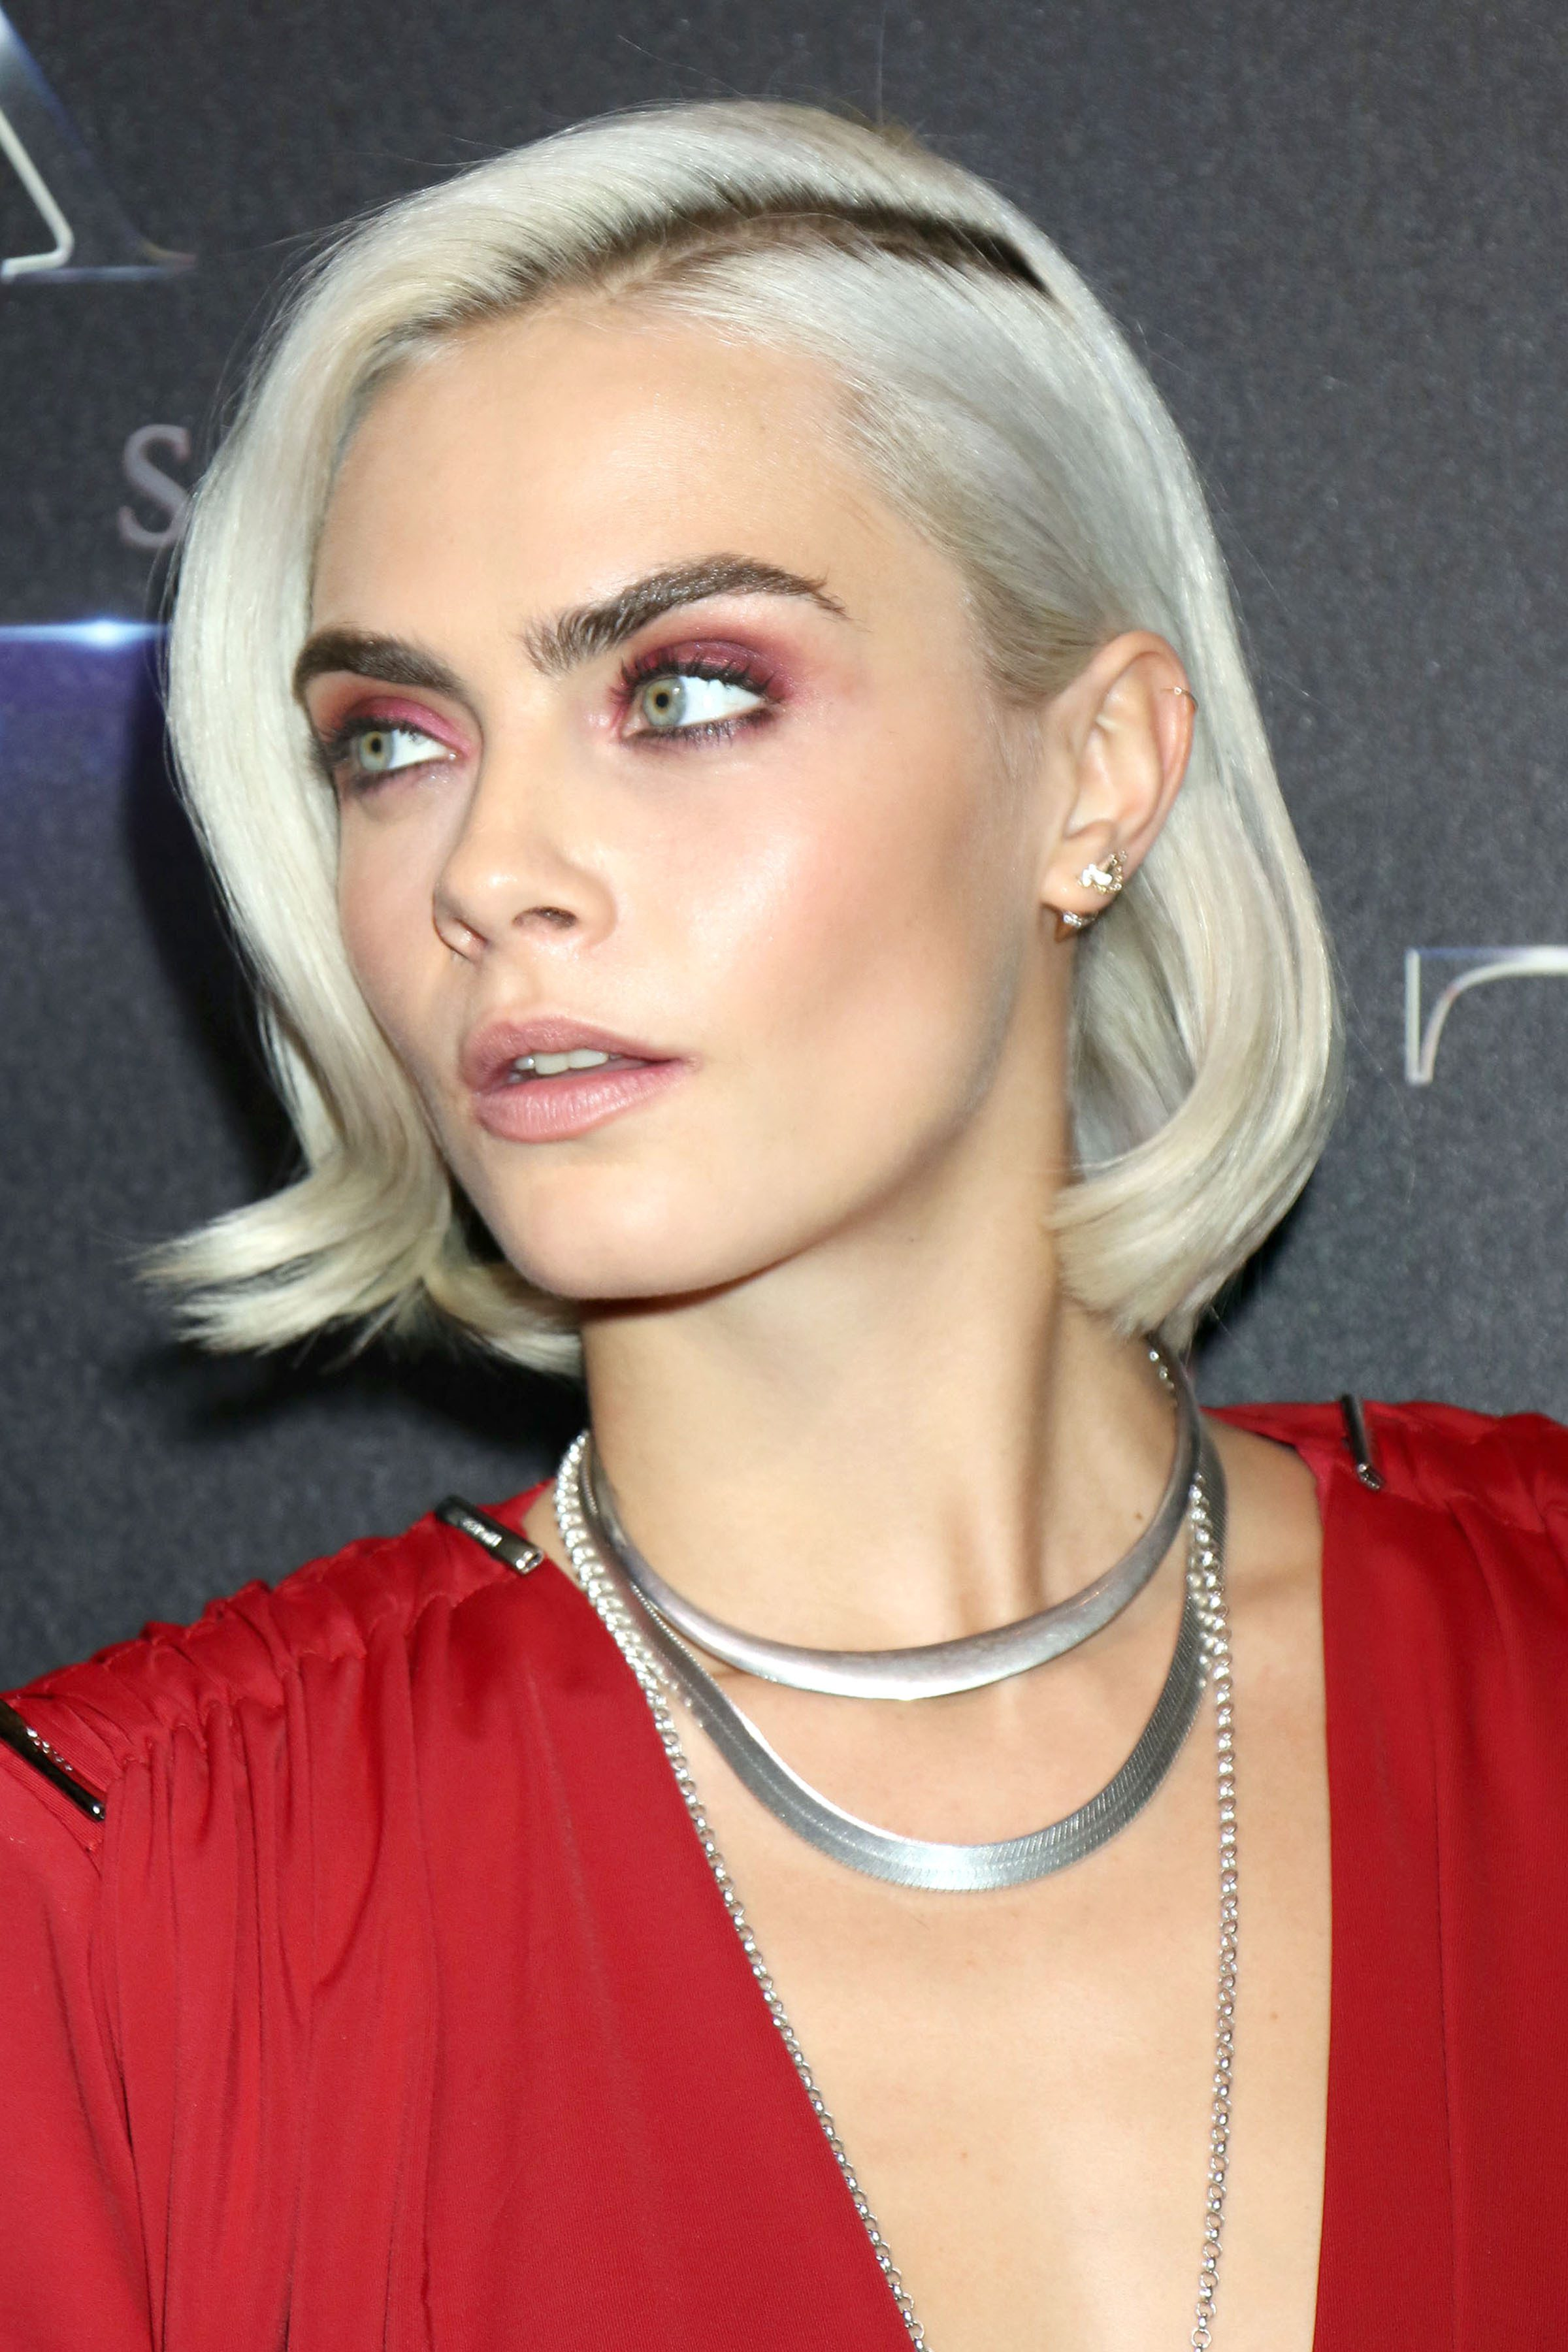 Cara Delevingne's Silver Blonde Highlights with Dark Roots